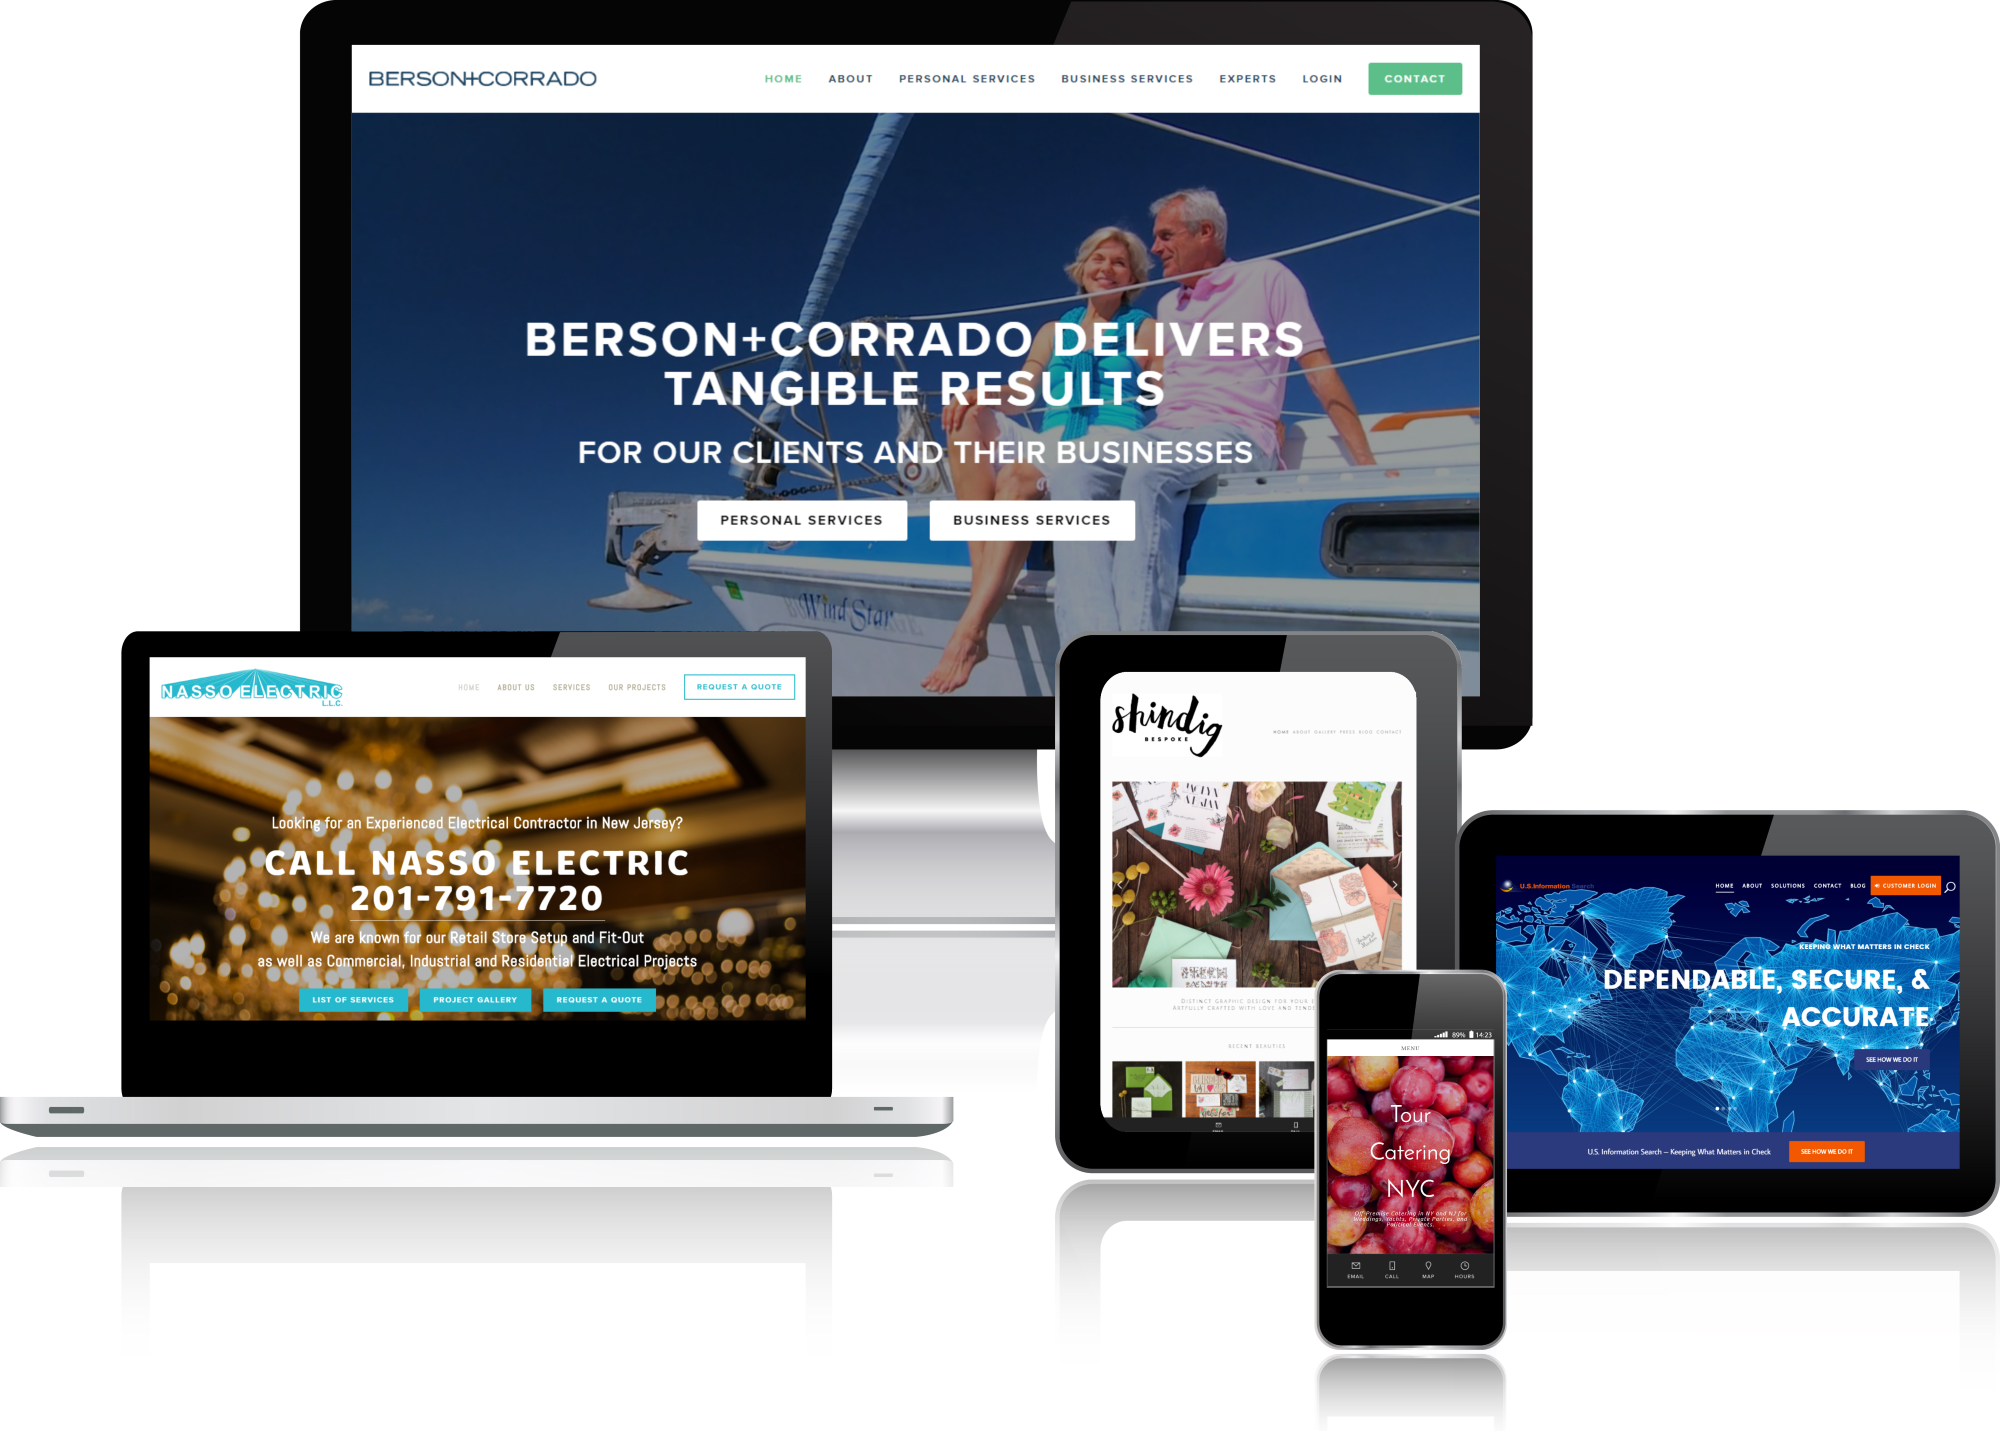 Mobile Responsive Village Marketing Co Websites built in New Jersey Complete V2 Small 2000px by 1457.png